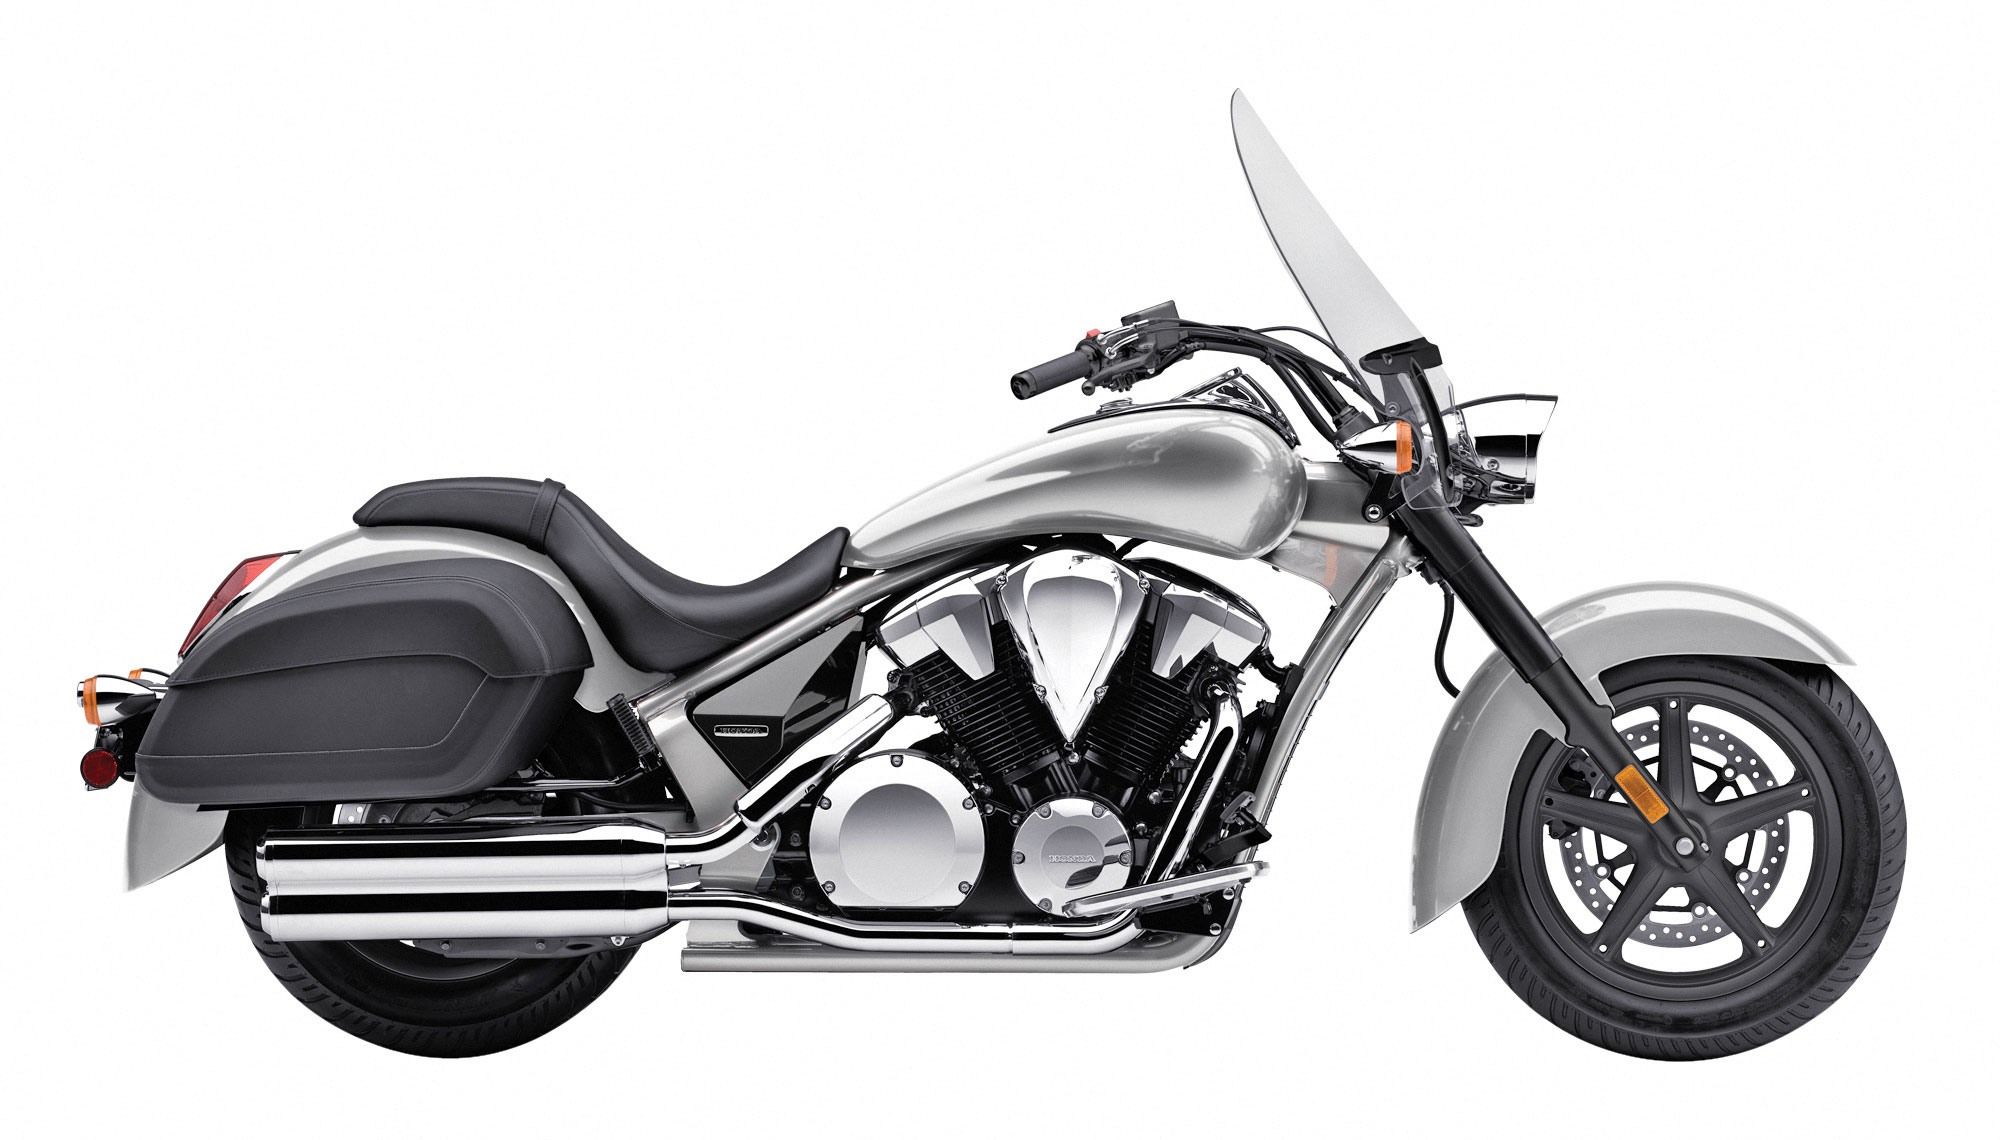 Honda VT 1300 CT Interstate 2013 images #83105